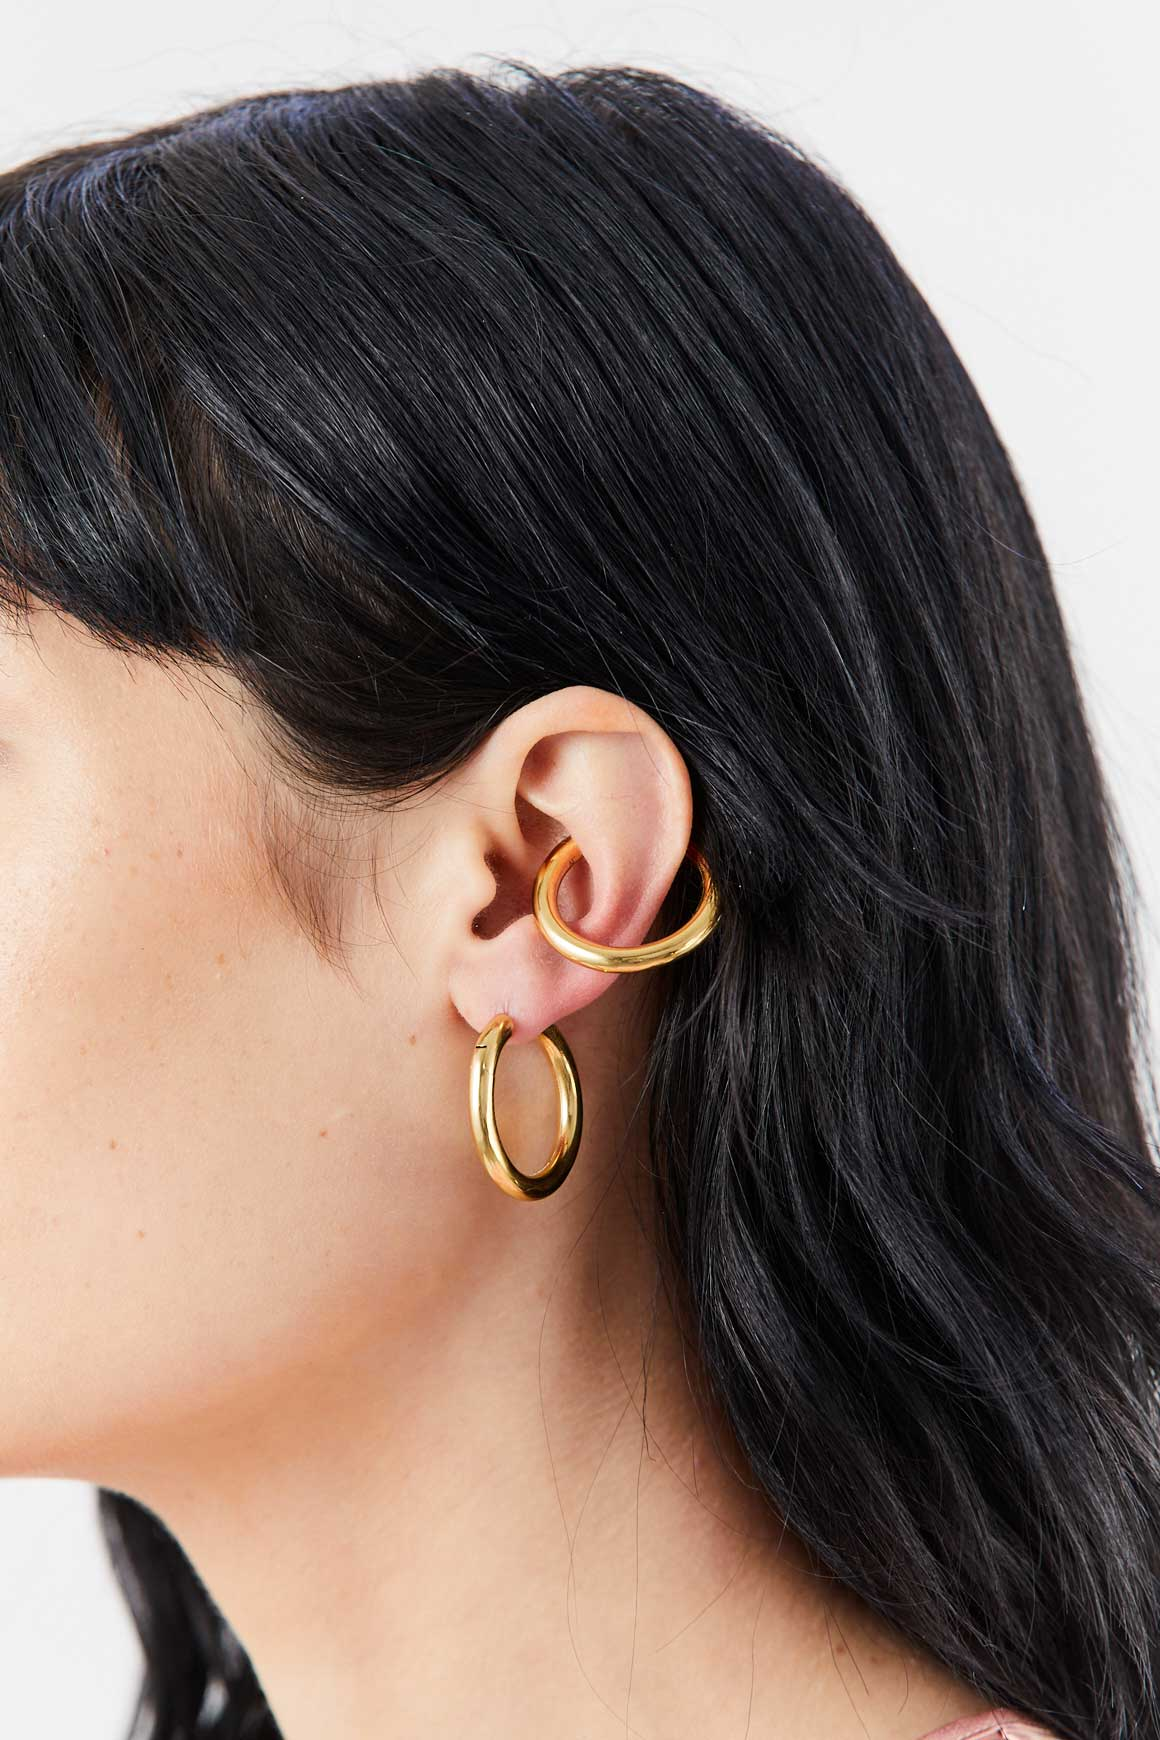 ALAN CROCETTI - Loophole Earring Set, Gold